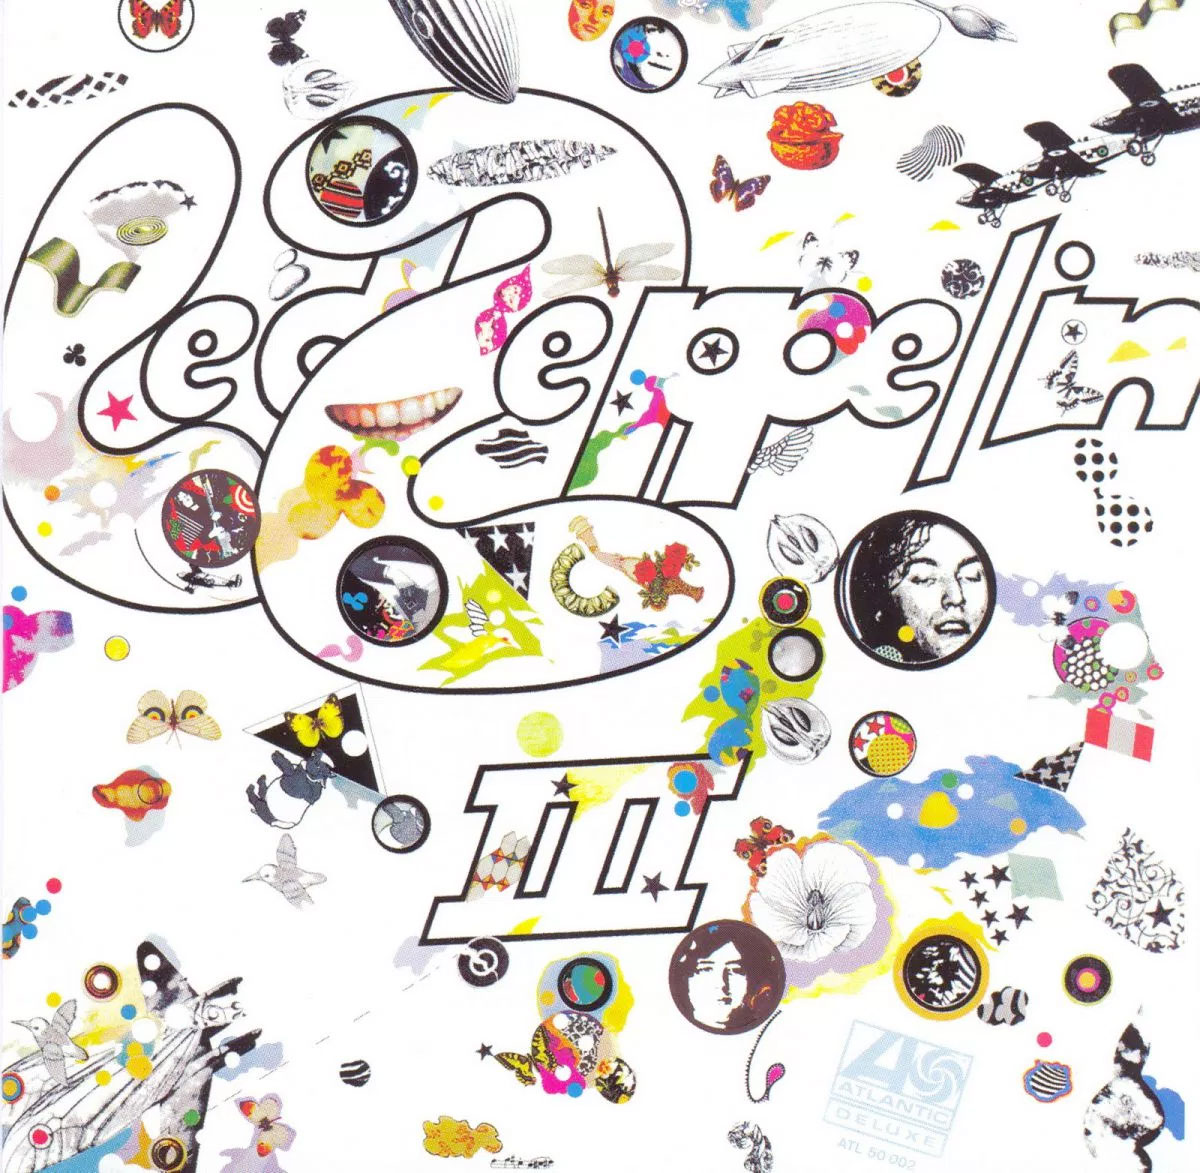 Led Zeppelin III featuring Immigrant Song